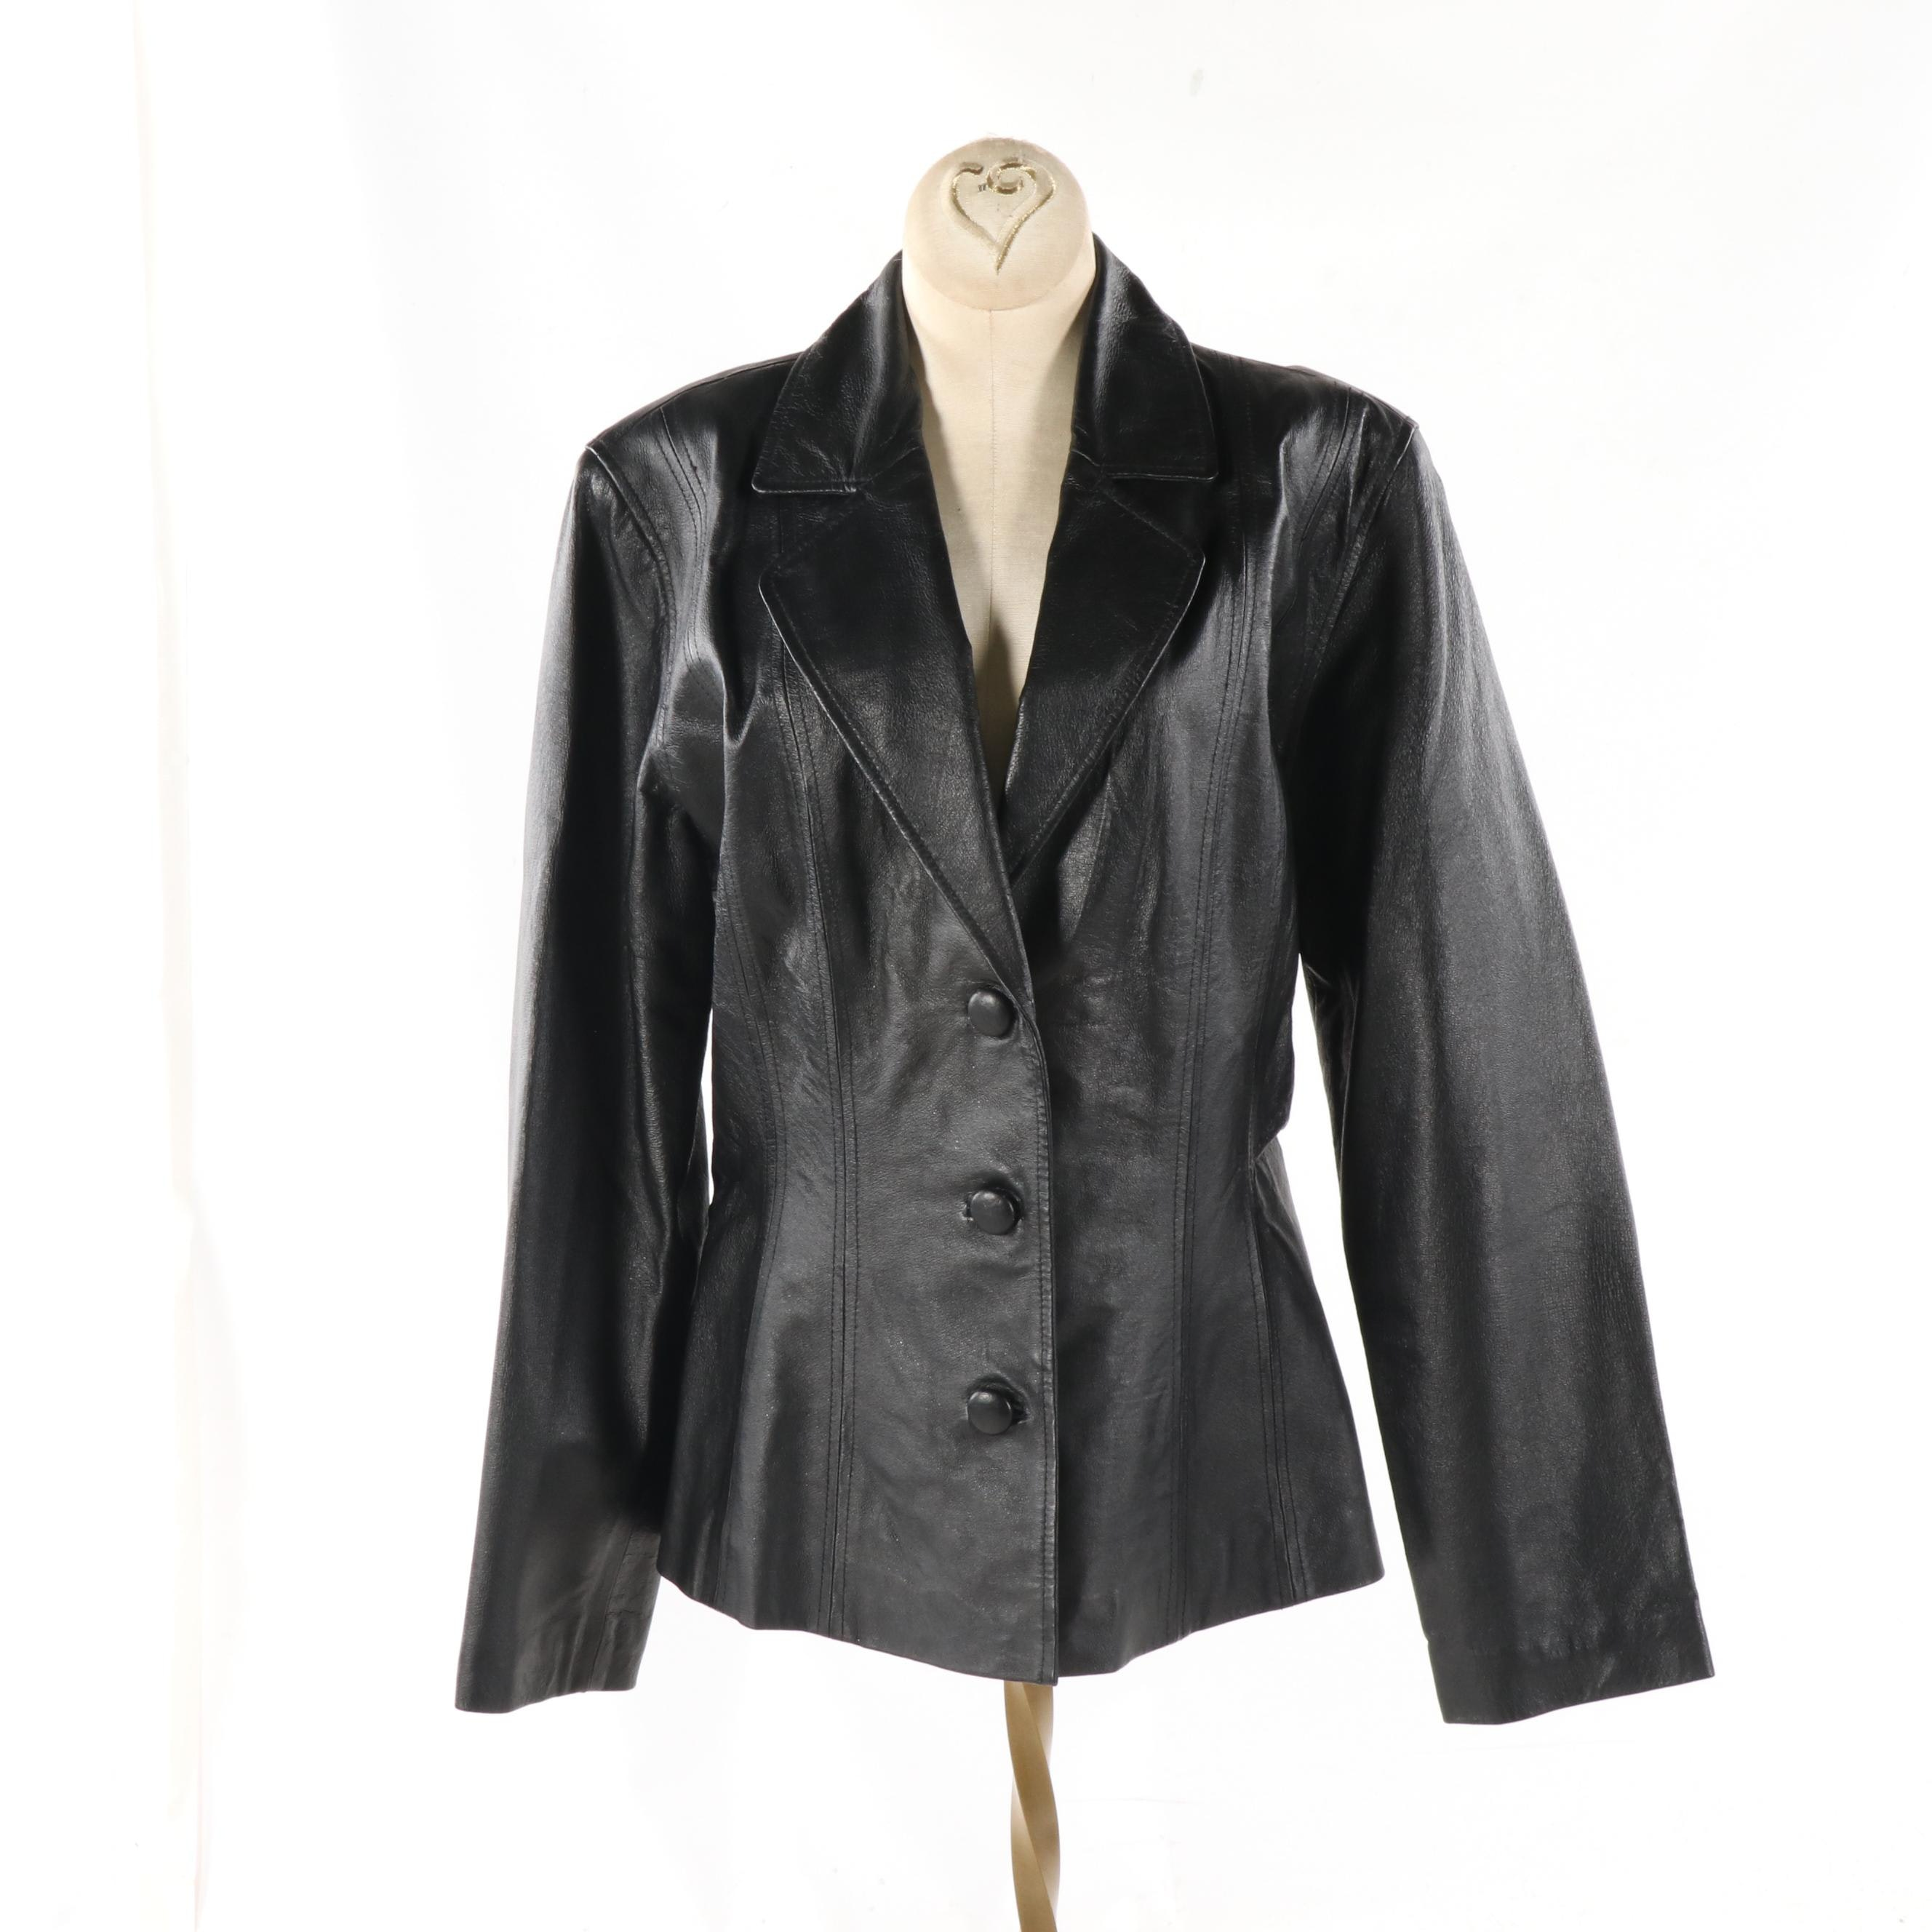 Women's Tower Hill Collection Black Leather Jacket